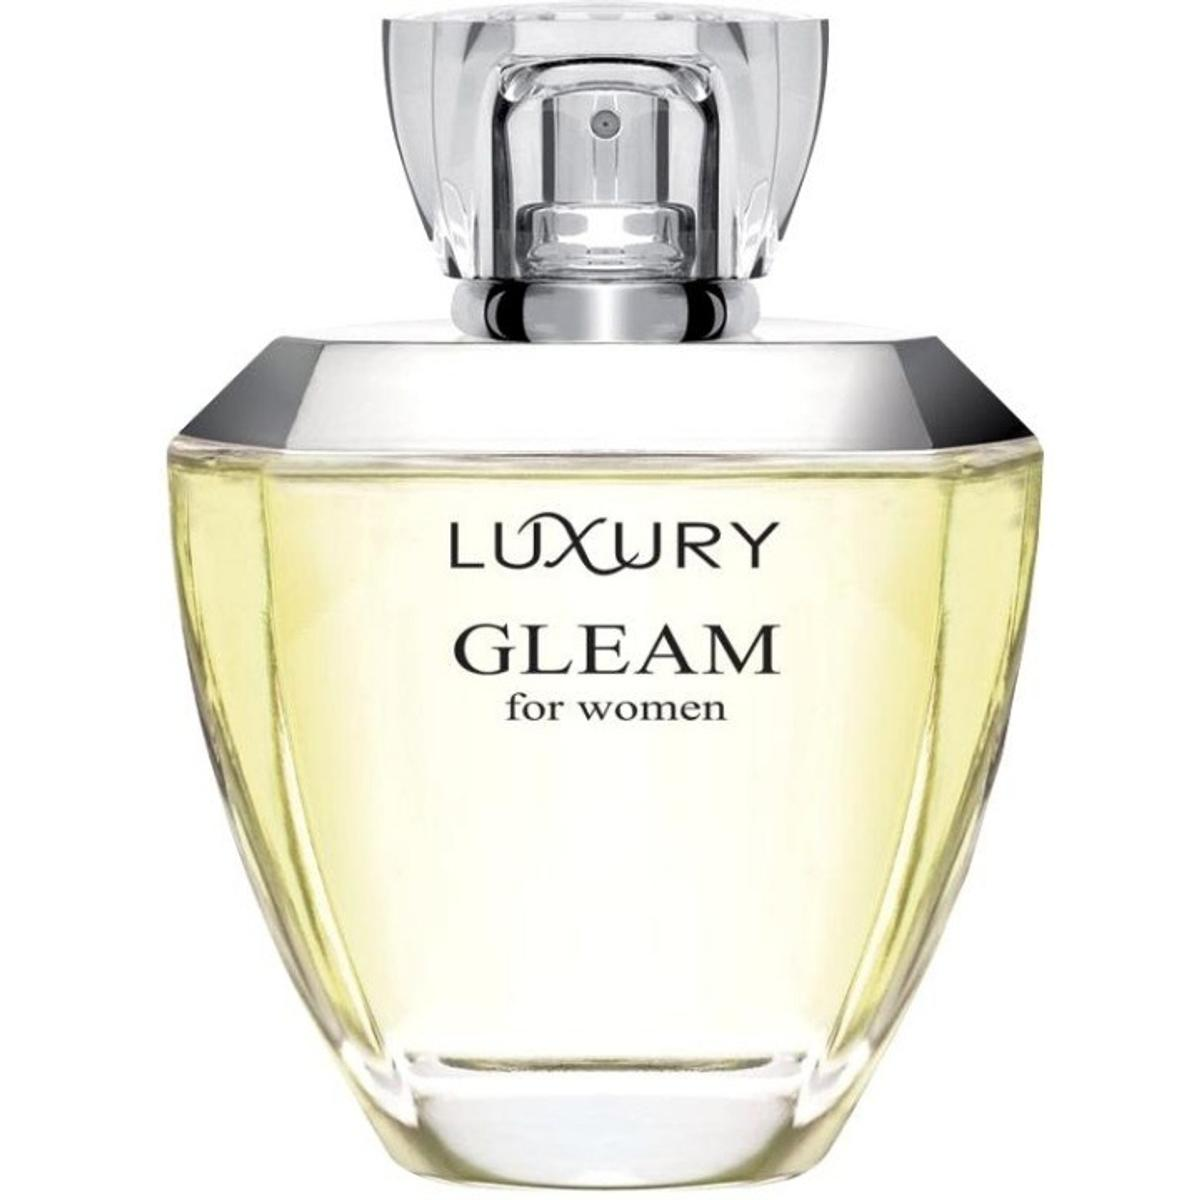 Luxury Gleam Eau De Parfum 100 Ml In 06766 Bitterfeld Wolfen For